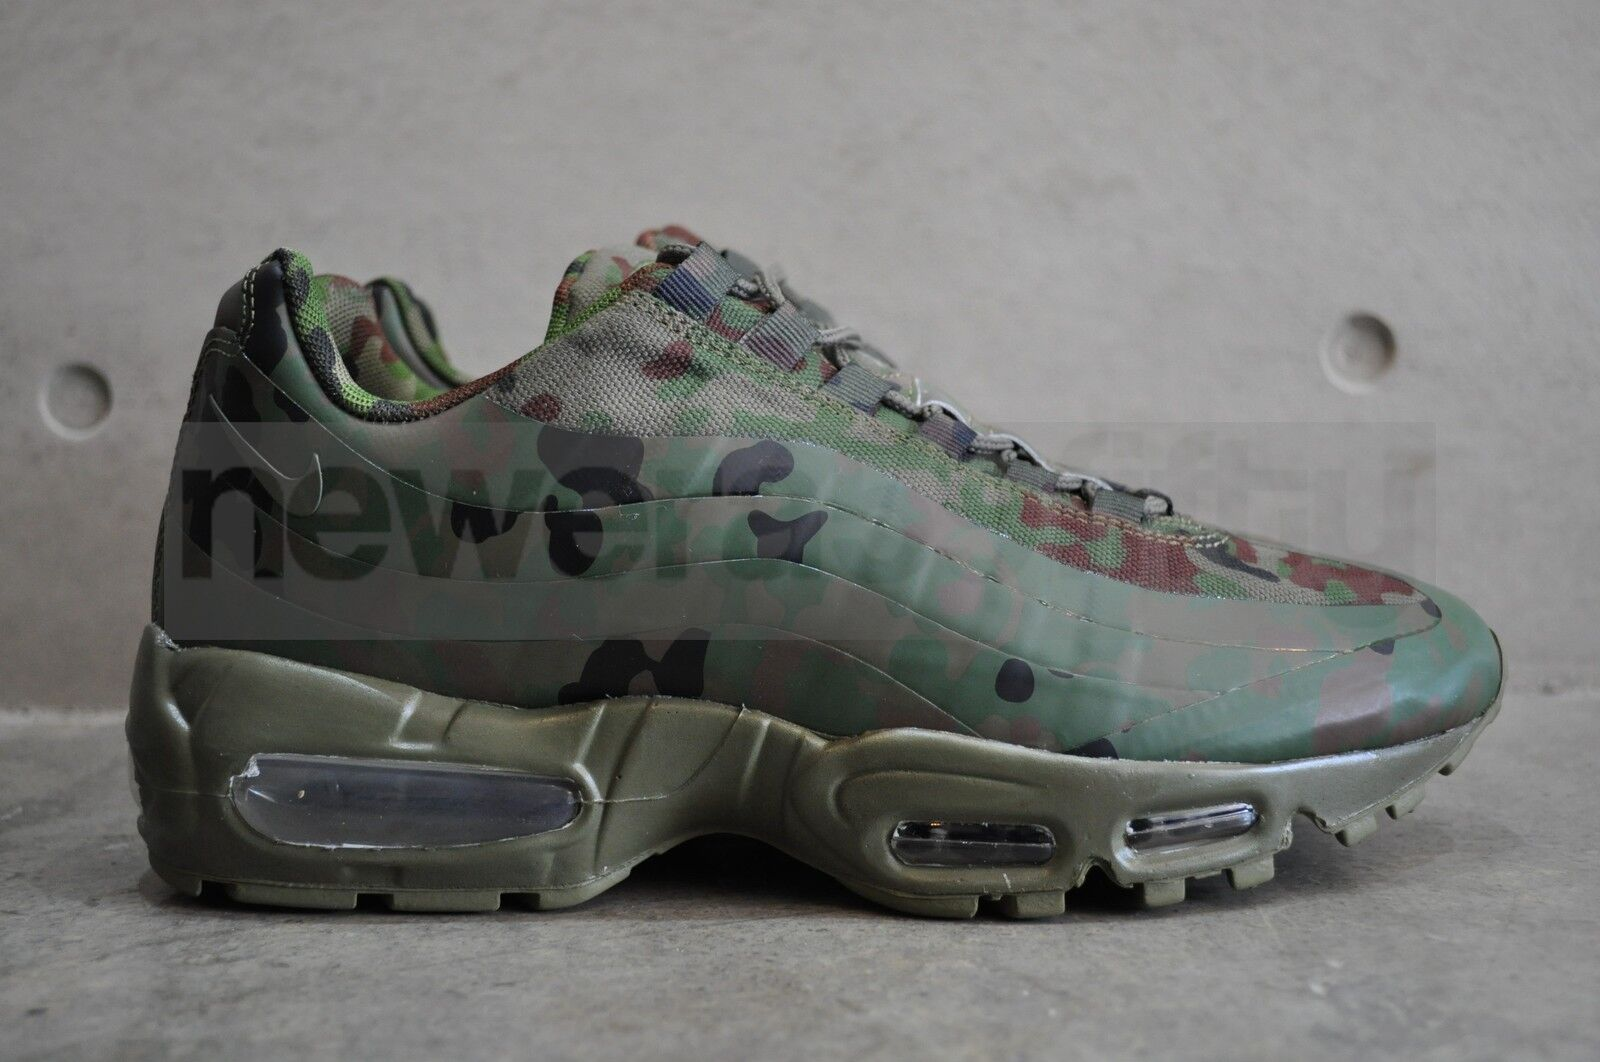 Nike Air Max 95 Japan SP - Pale Olive/Safari (Camo Collection)